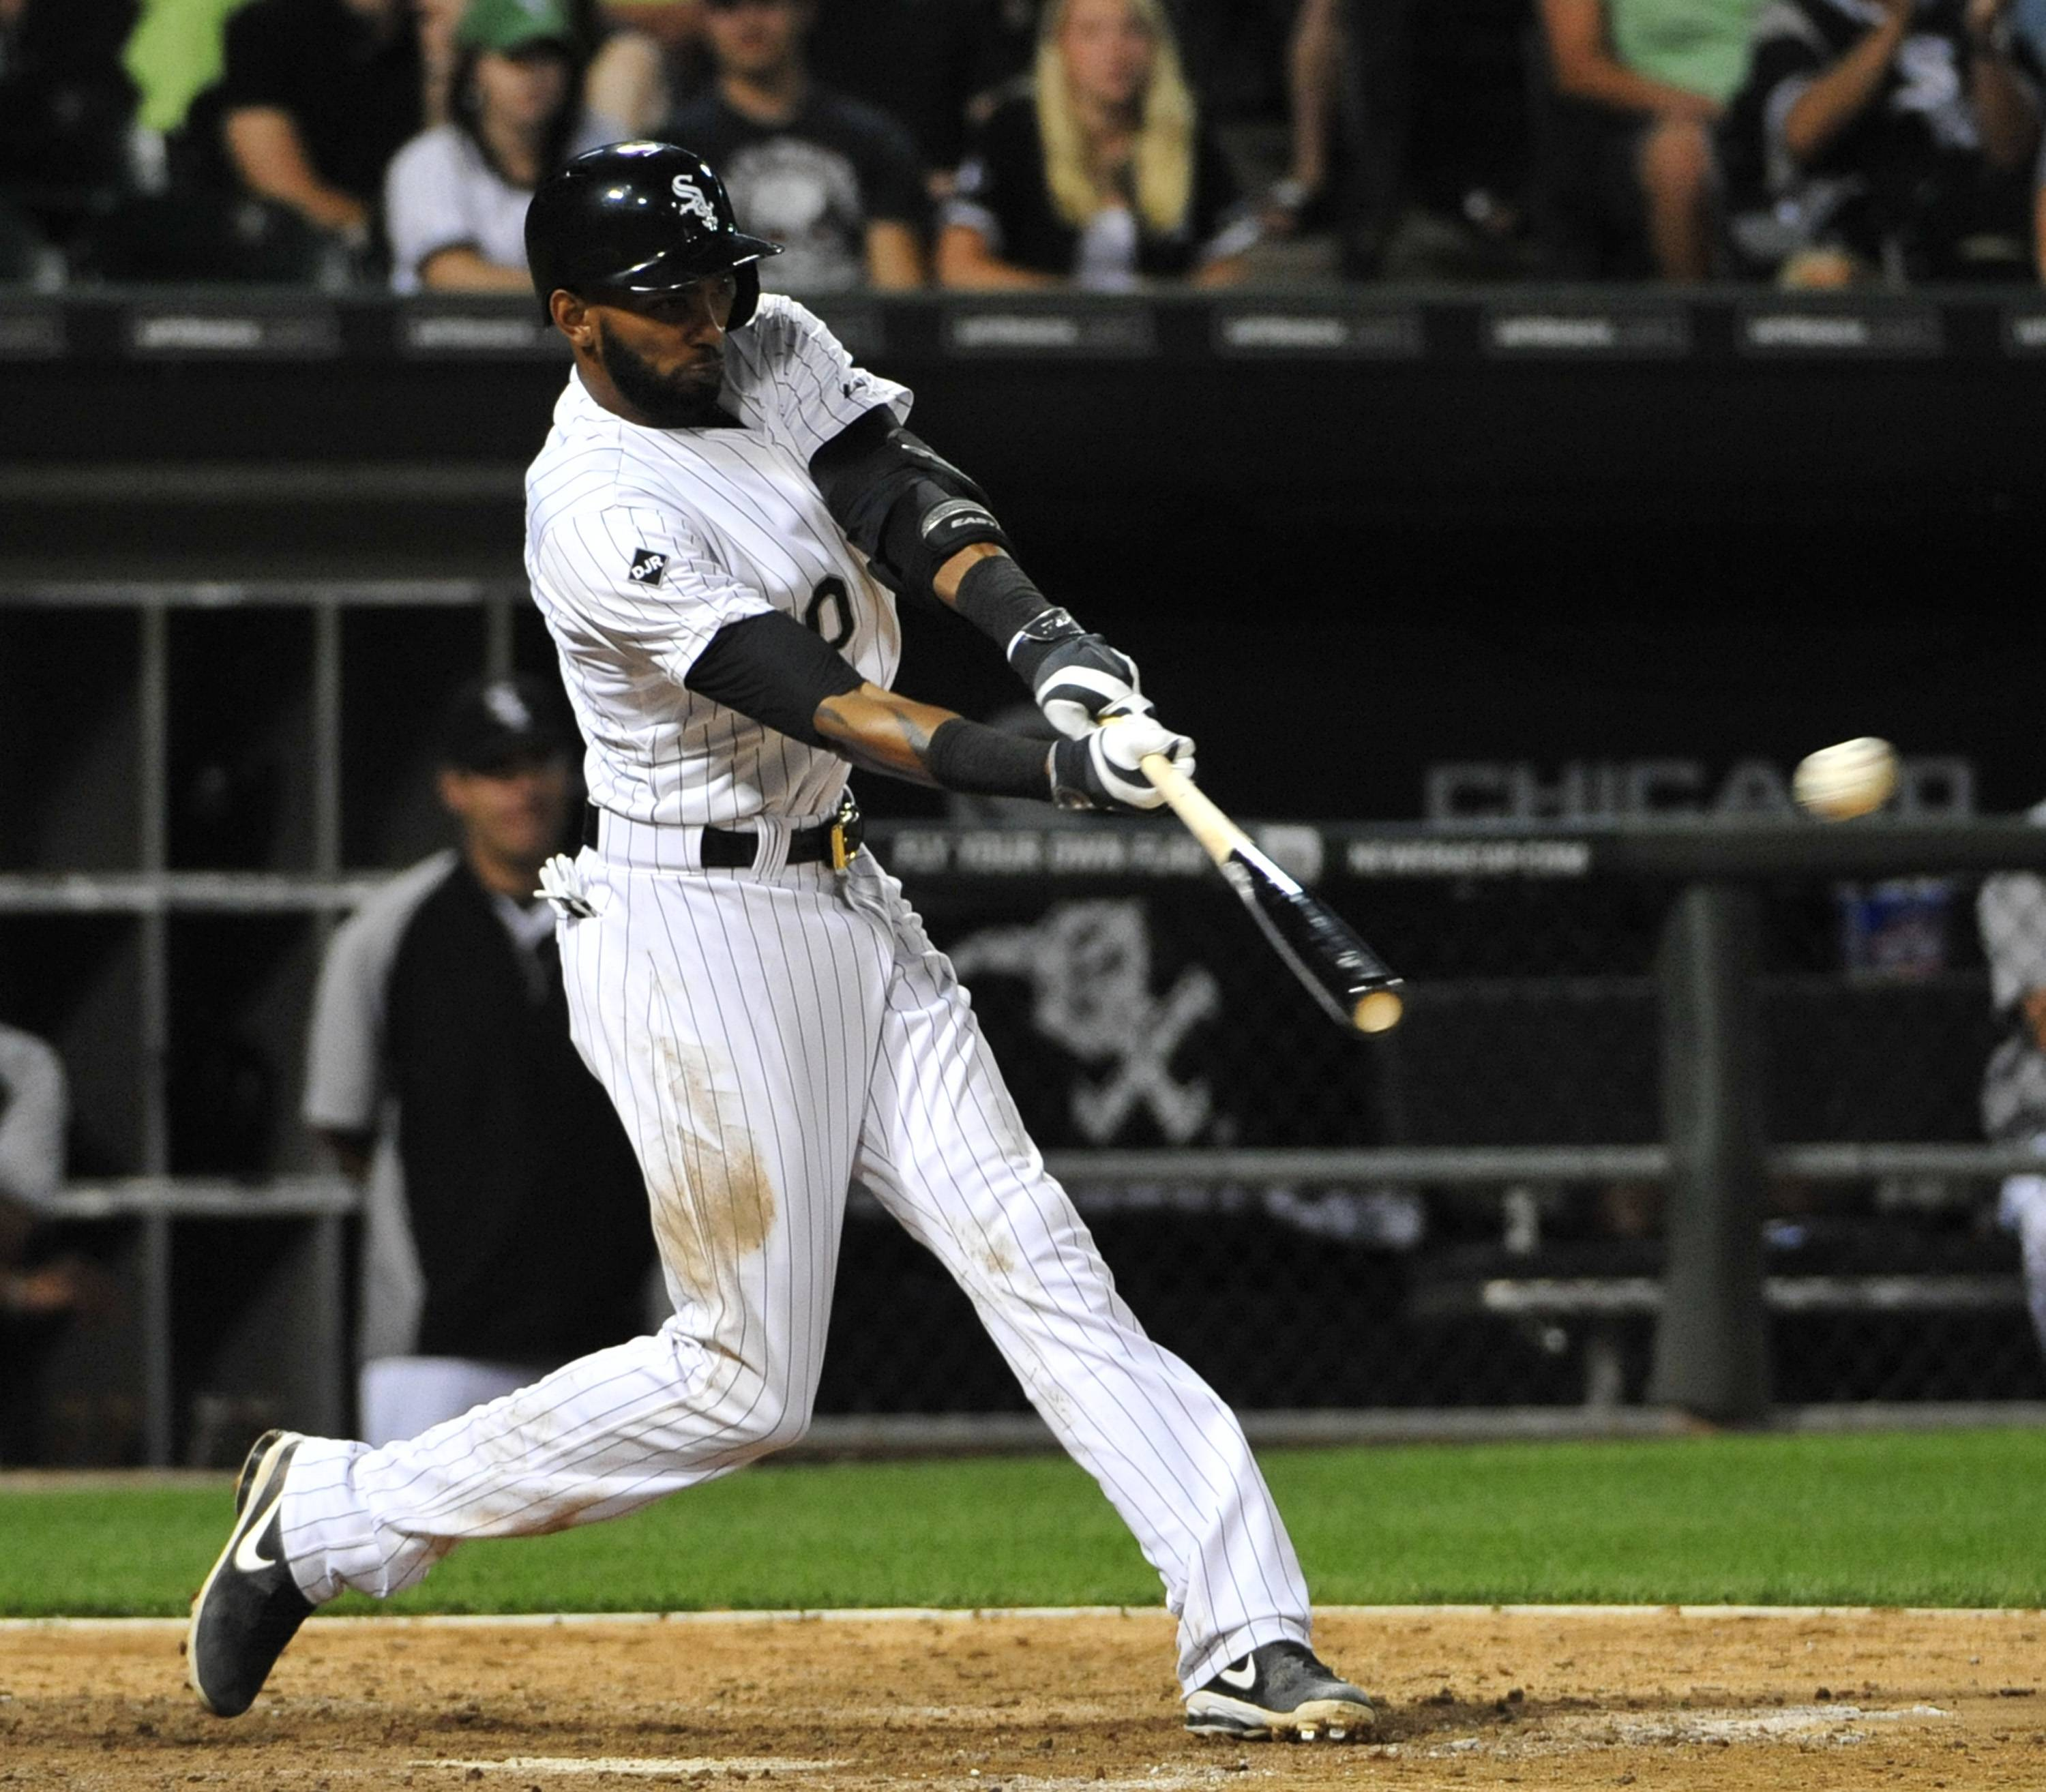 The White Sox's Alexei Ramirez hits an RBI double against the Minnesota Twin during the sixth inning of a baseball game, Friday, Aug. 1, 2014, in Chicago.